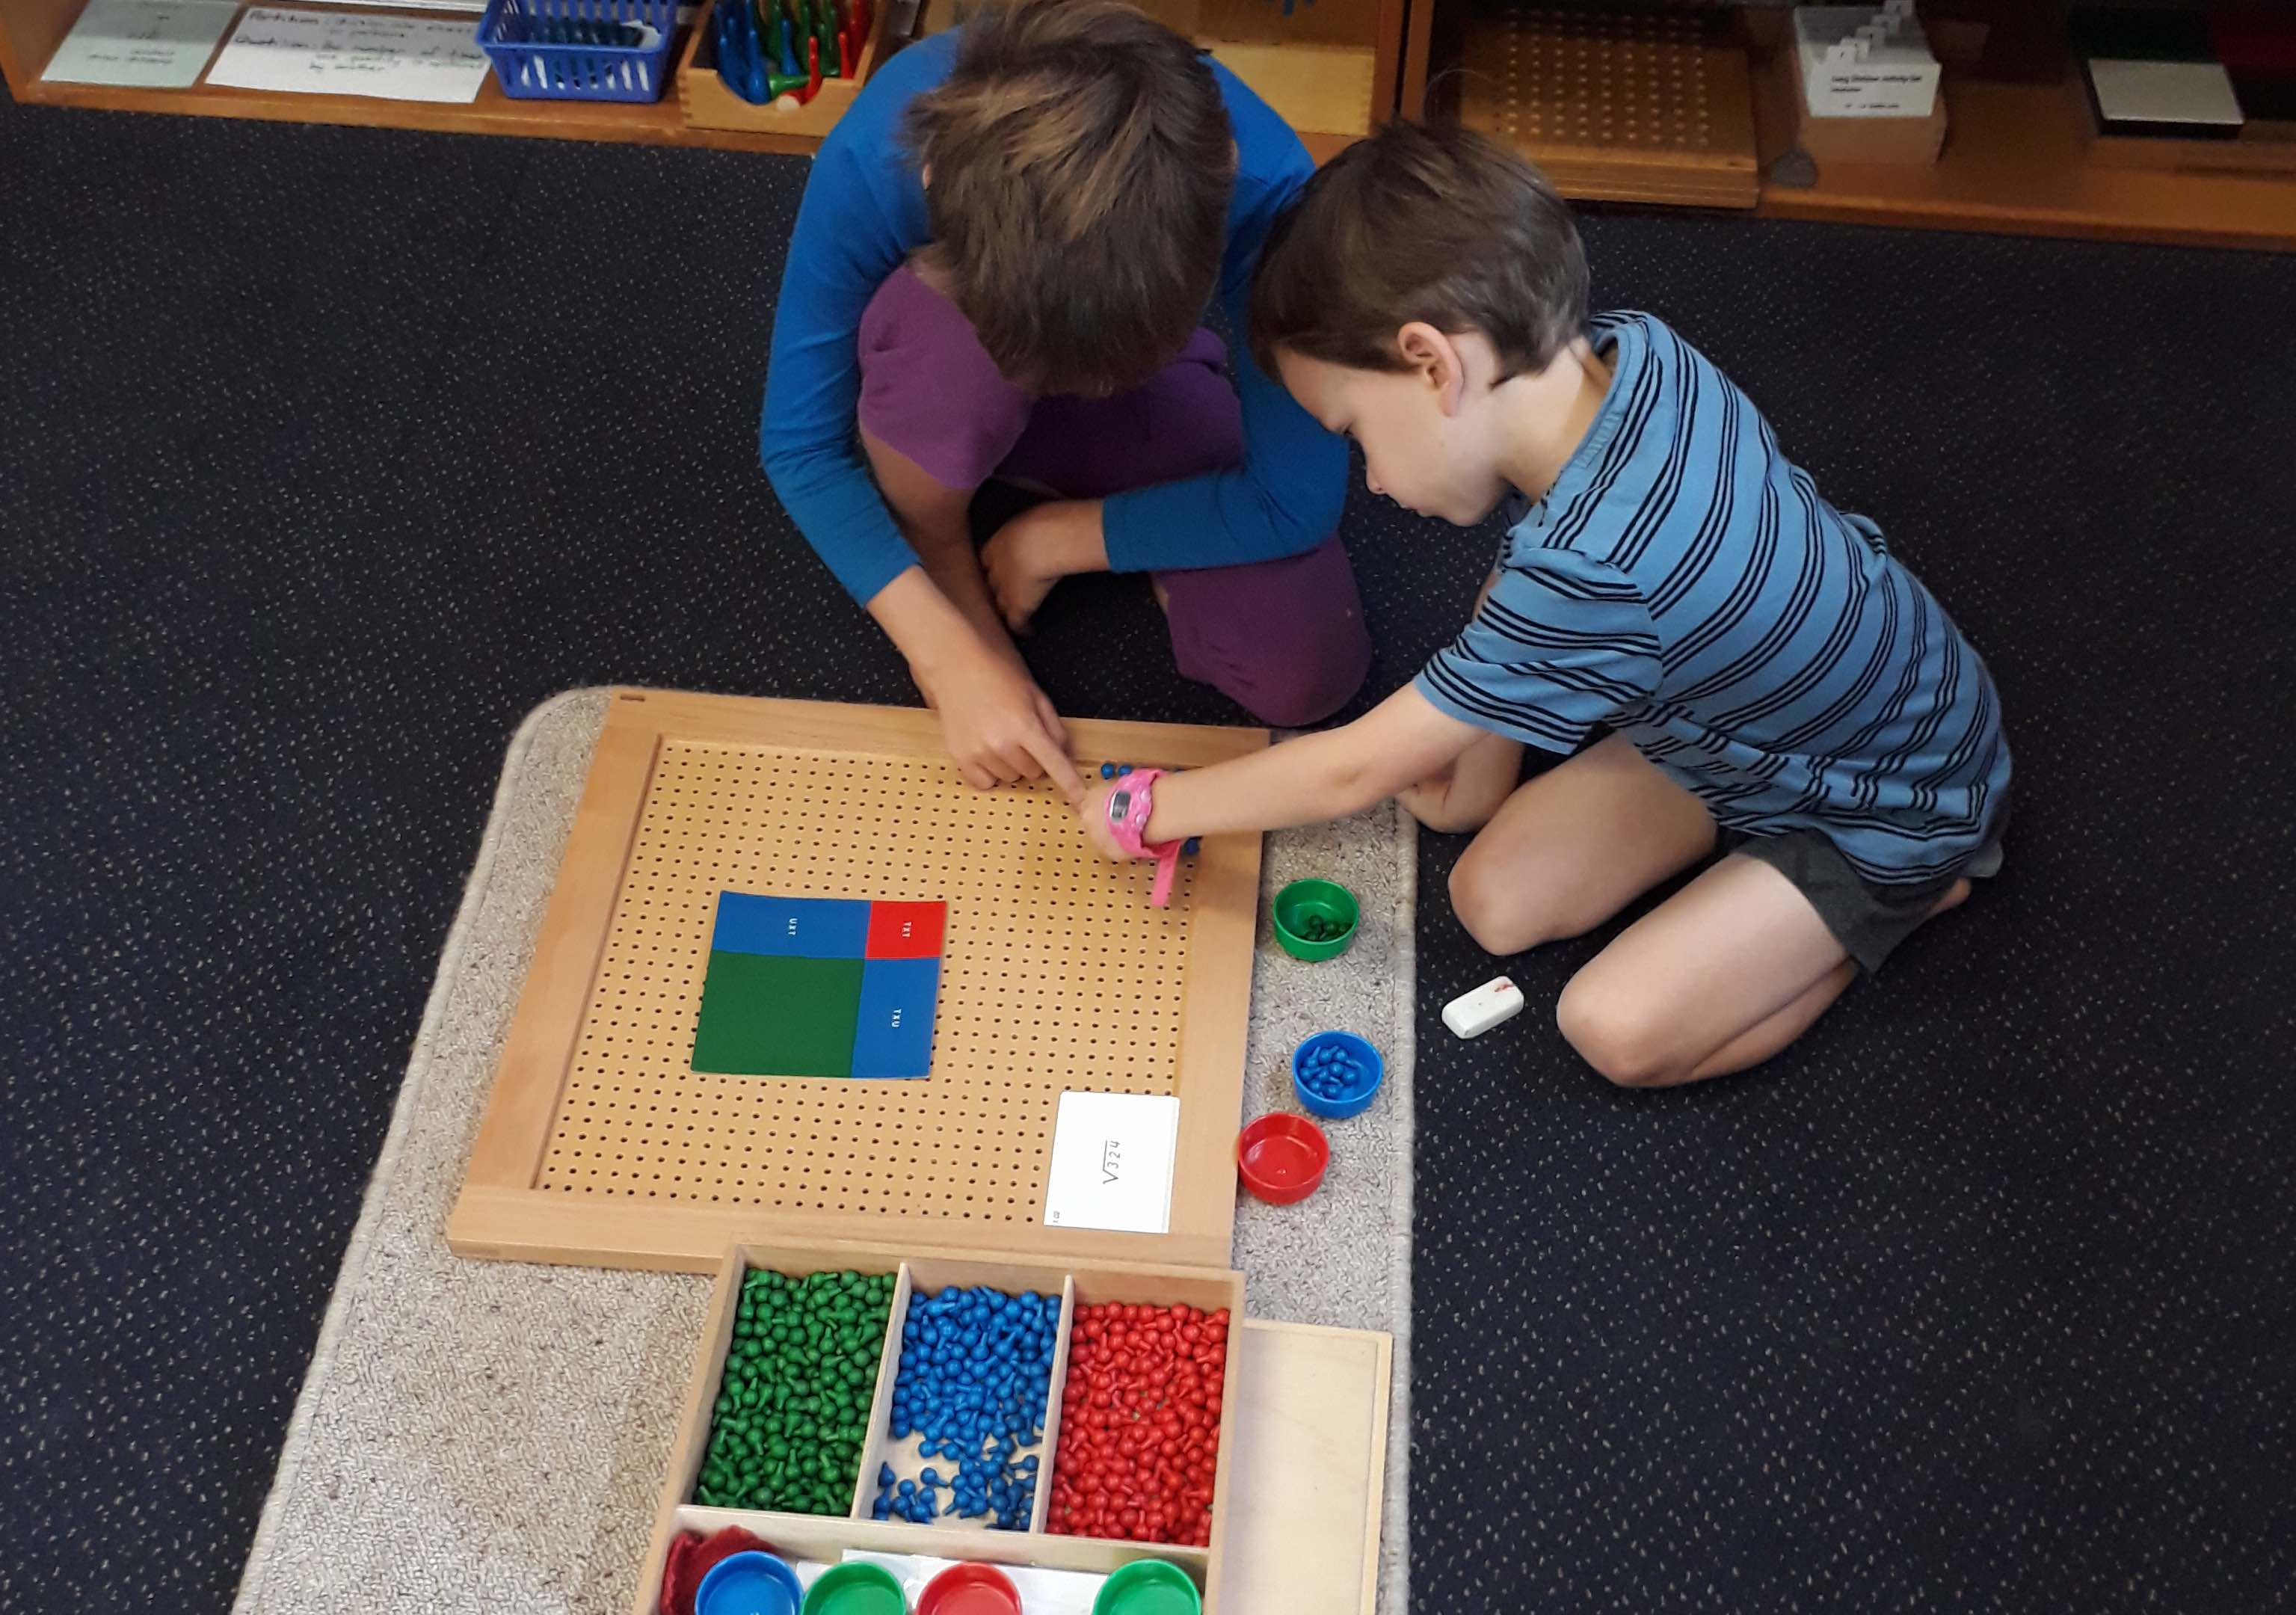 Montessori maths mahi at Port Ahuriri Primary School